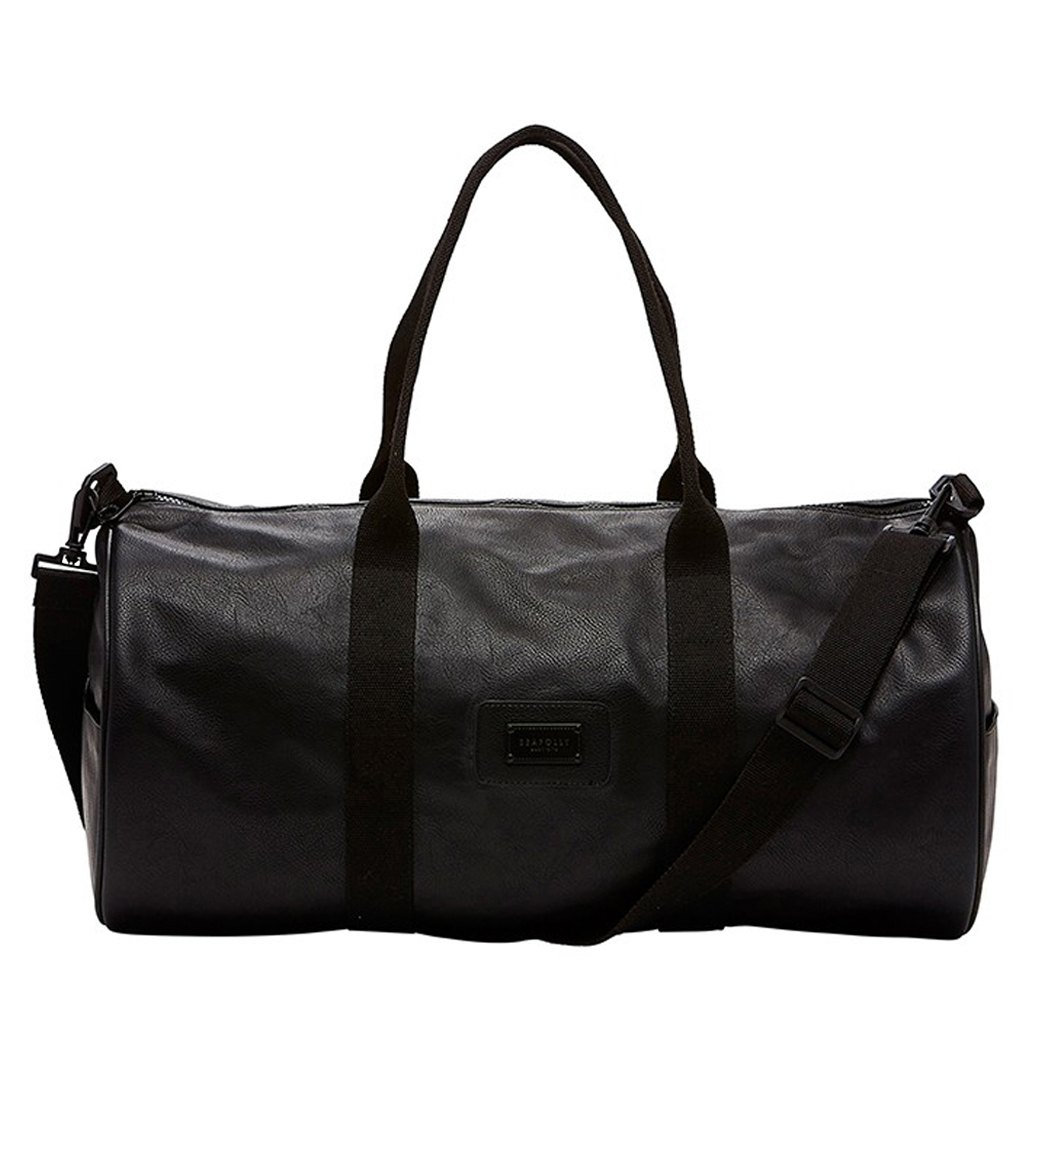 2fa173501a32 Seafolly Women s Carried Away Leisure Luxe Duffle Bag at SwimOutlet.com -  Free Shipping